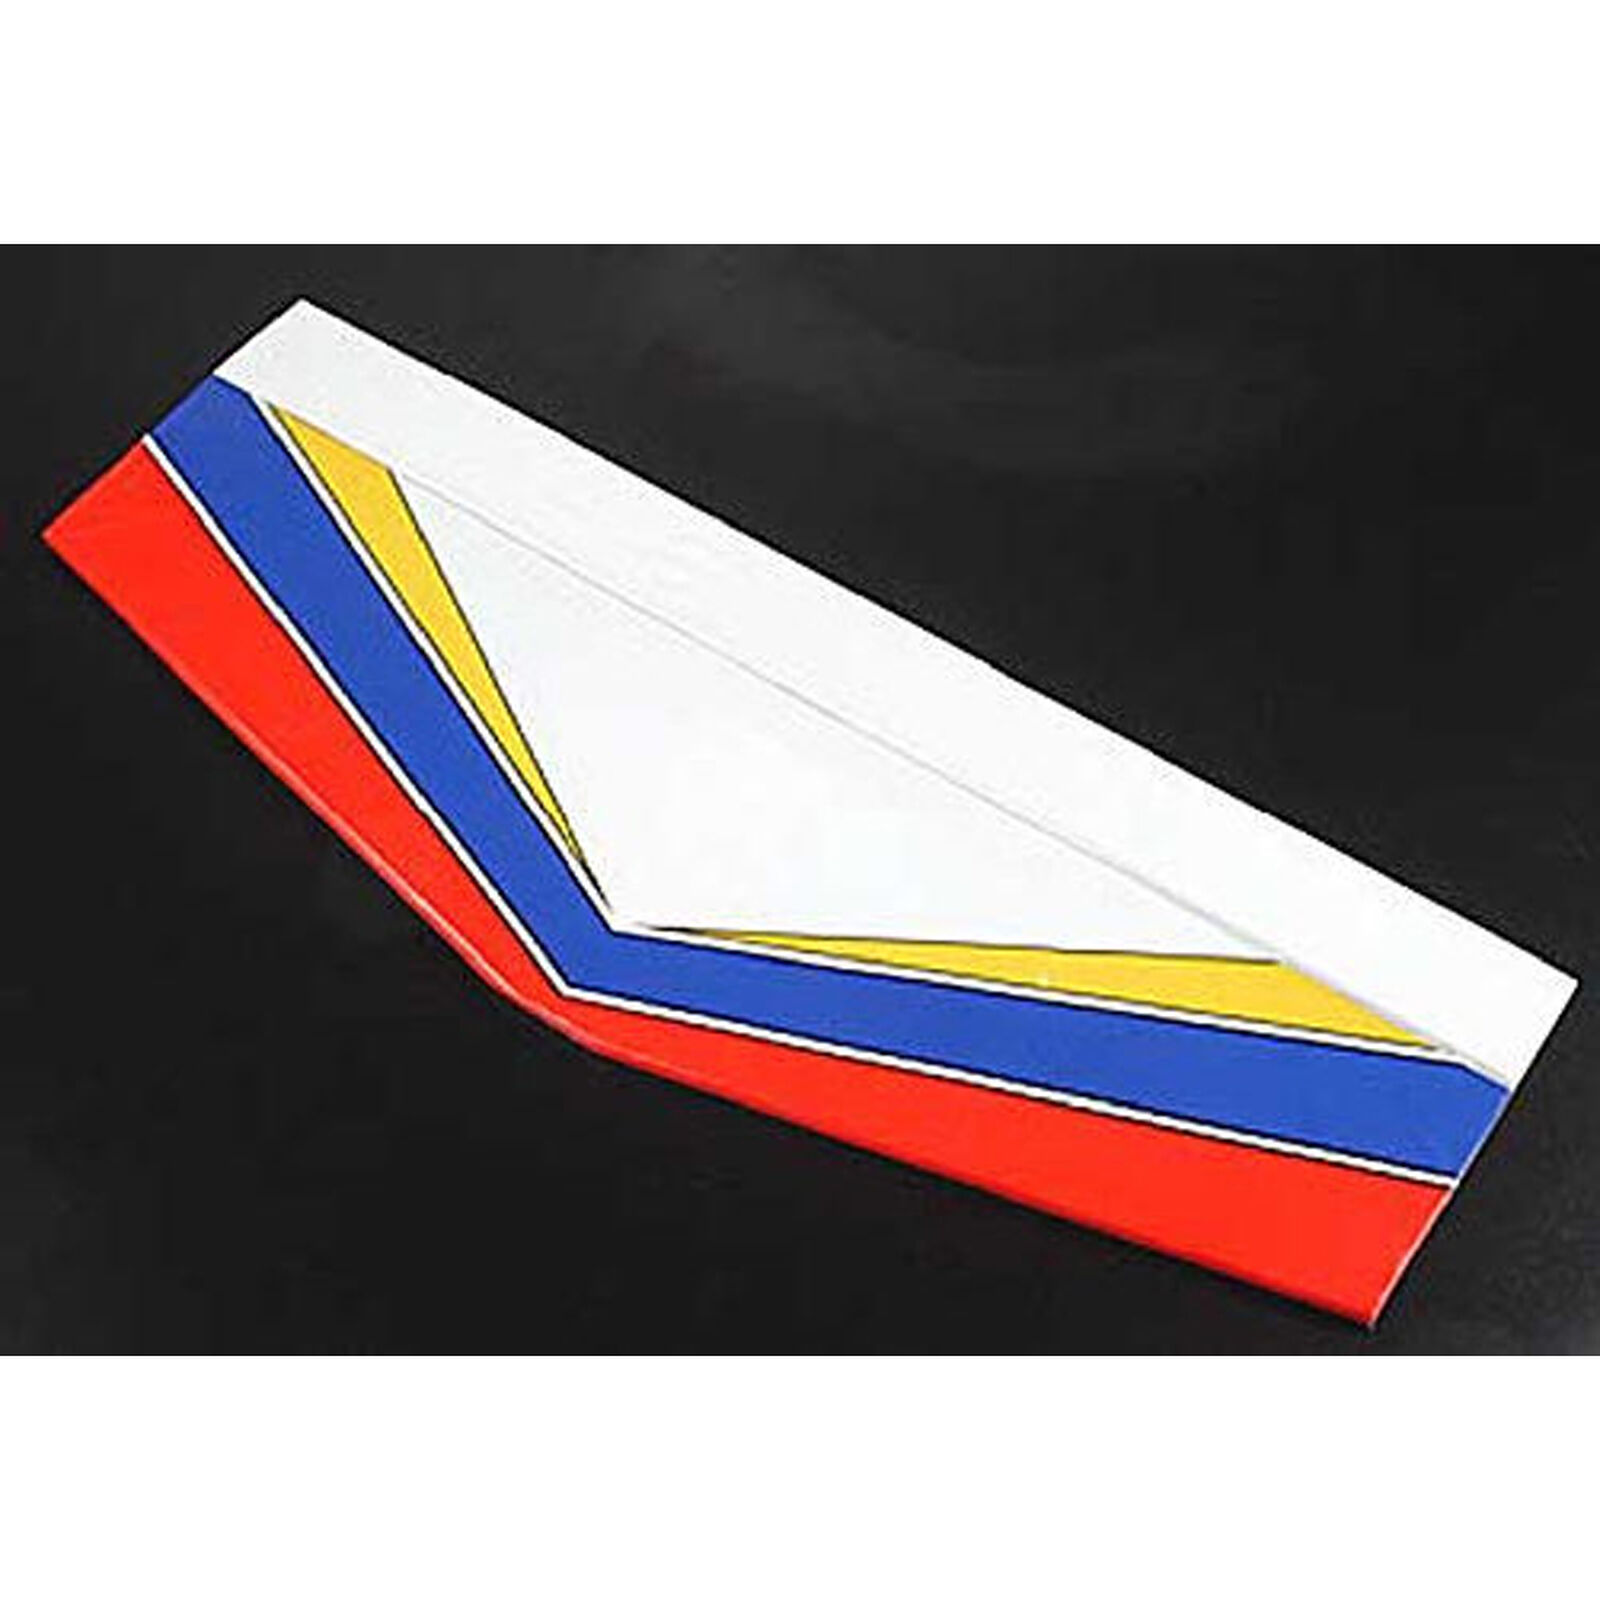 Horizontal Stabilizer Set Sonic .25 High